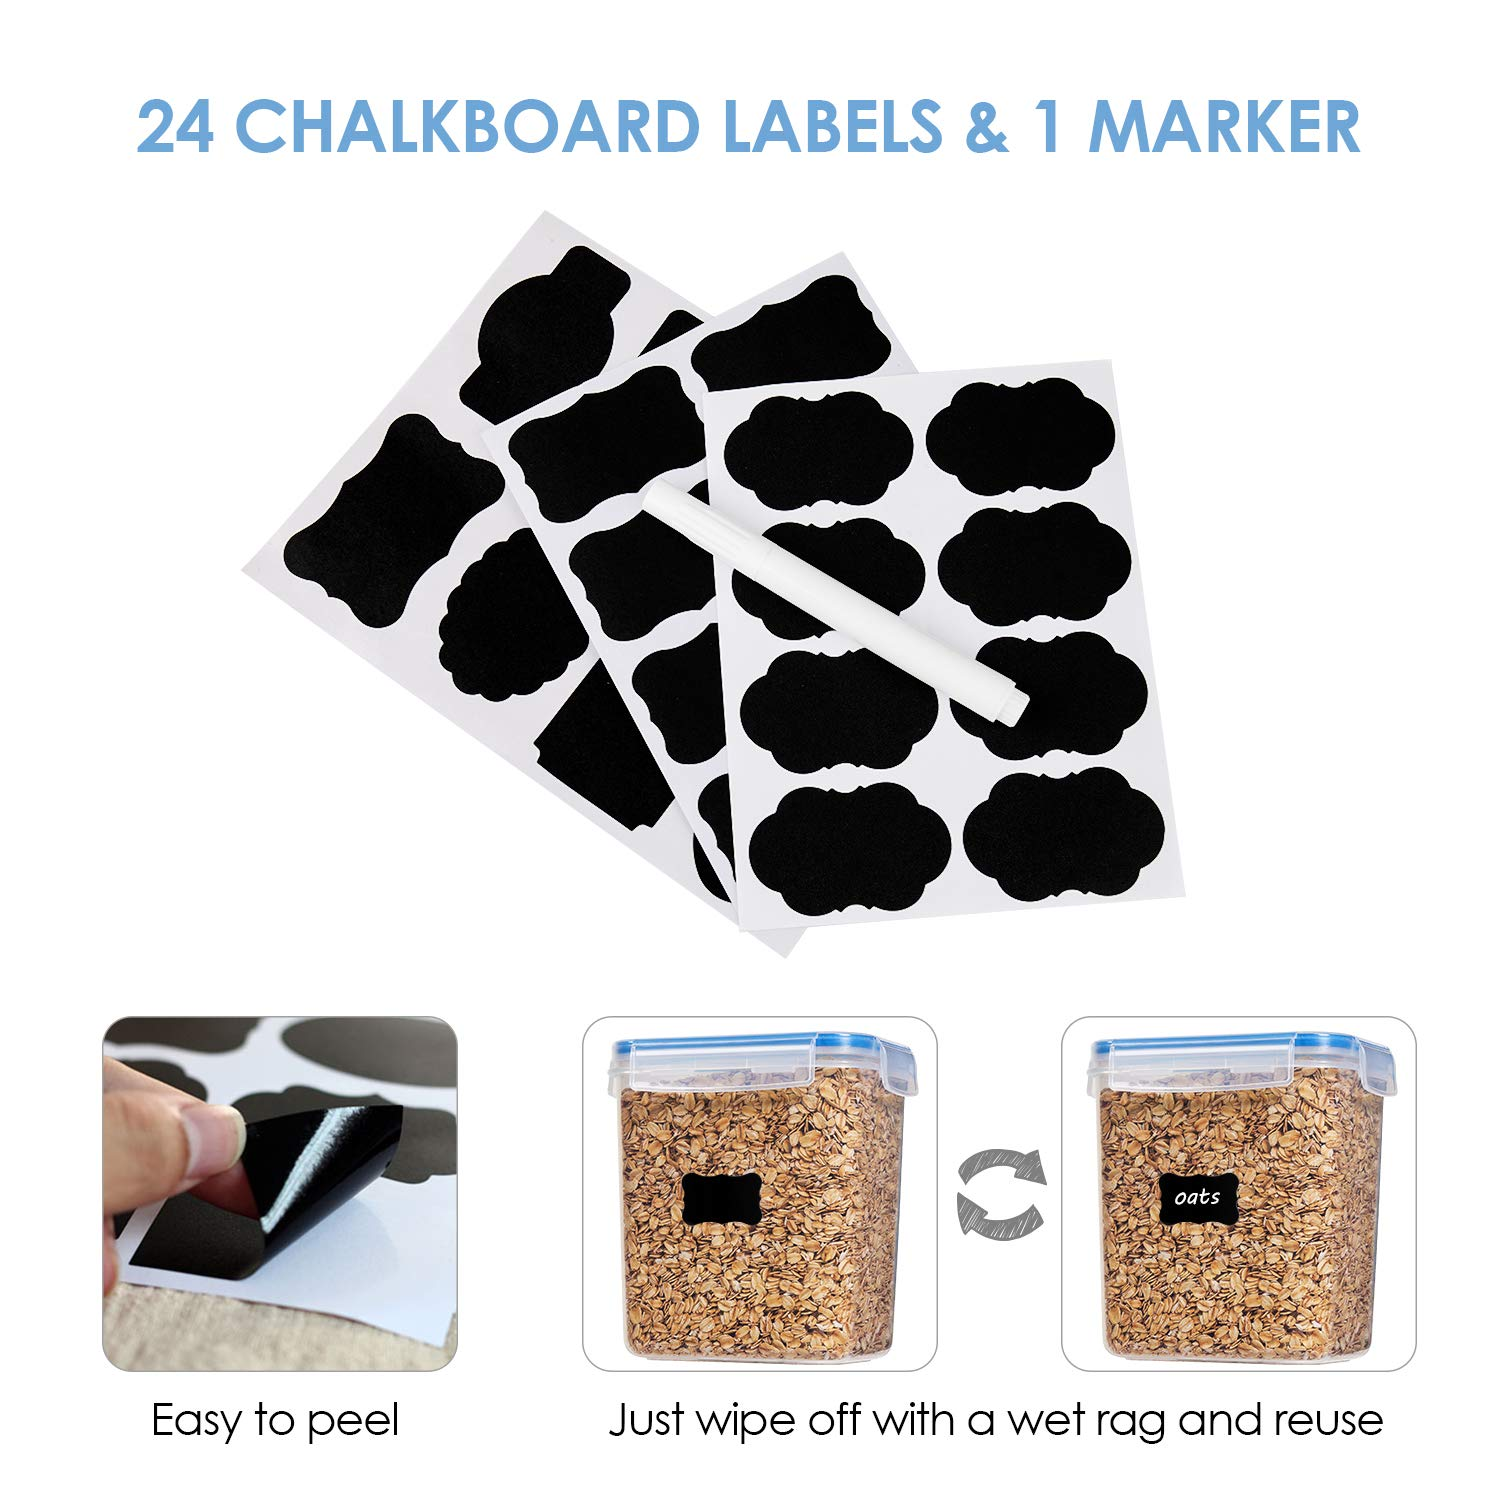 Vtopmart Airtight Food Storage Containers 12 Pieces - Plastic PBA Free Kitchen Pantry Storage Containers for Sugar,Flour and Baking Supplies - Dishwasher Safe - 24 Chalkboard Labels and 1 Marker by Vtopmart (Image #6)